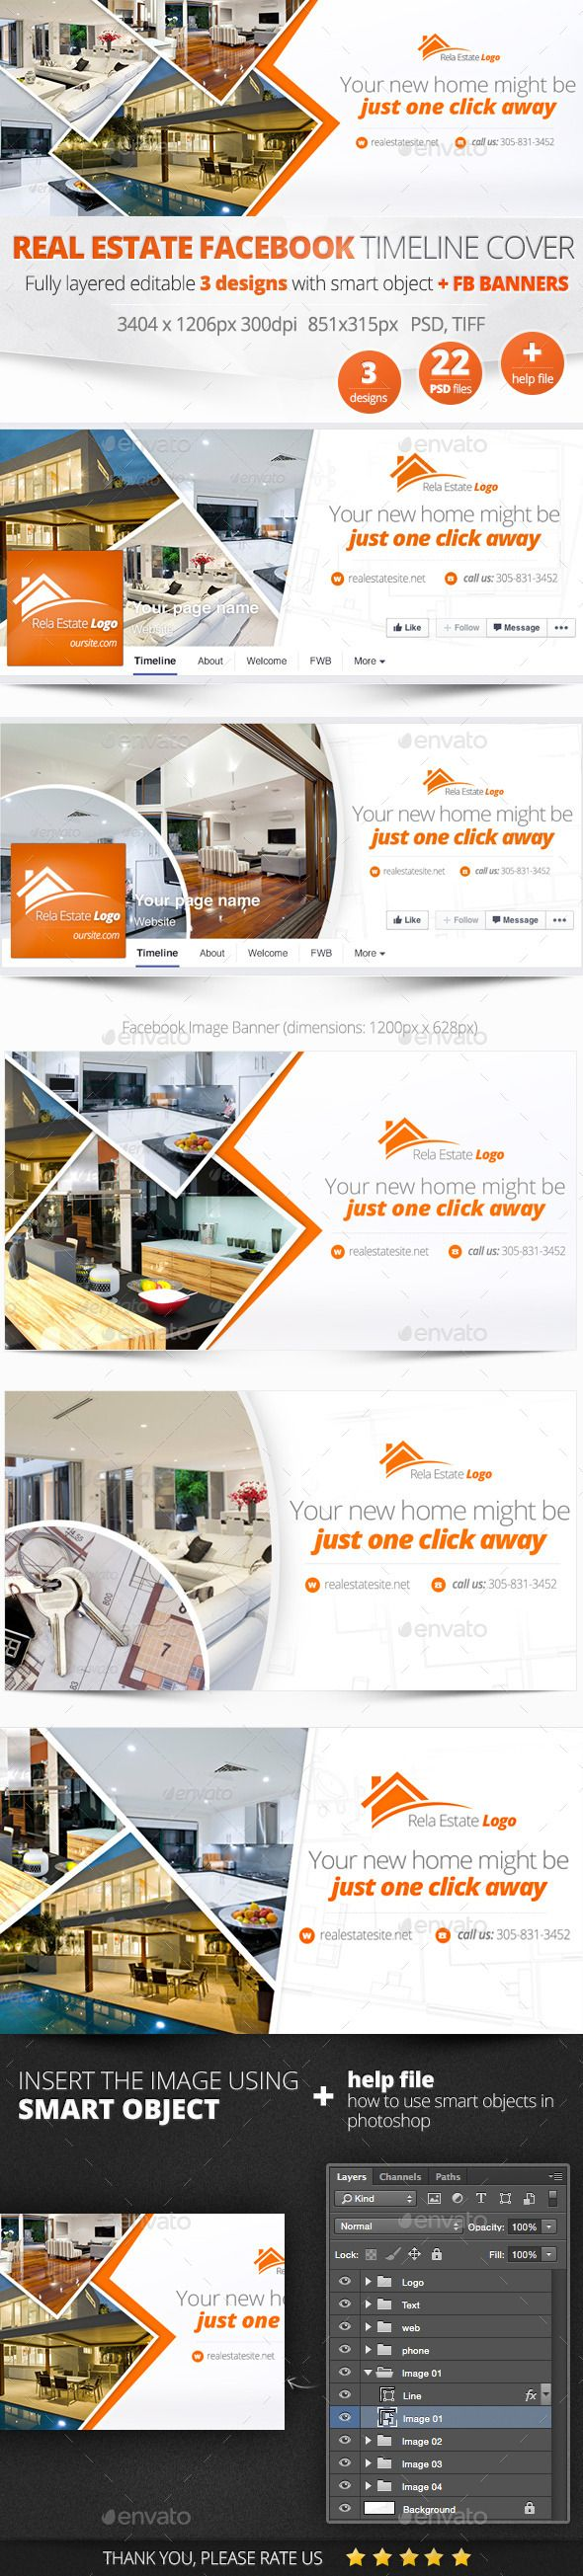 Real Estate Facebook Covers and Banners Templates PSD #design Download: http://graphicriver.net/item/real-estate-facebook-covers-and-banners/11177115?ref=ksioks